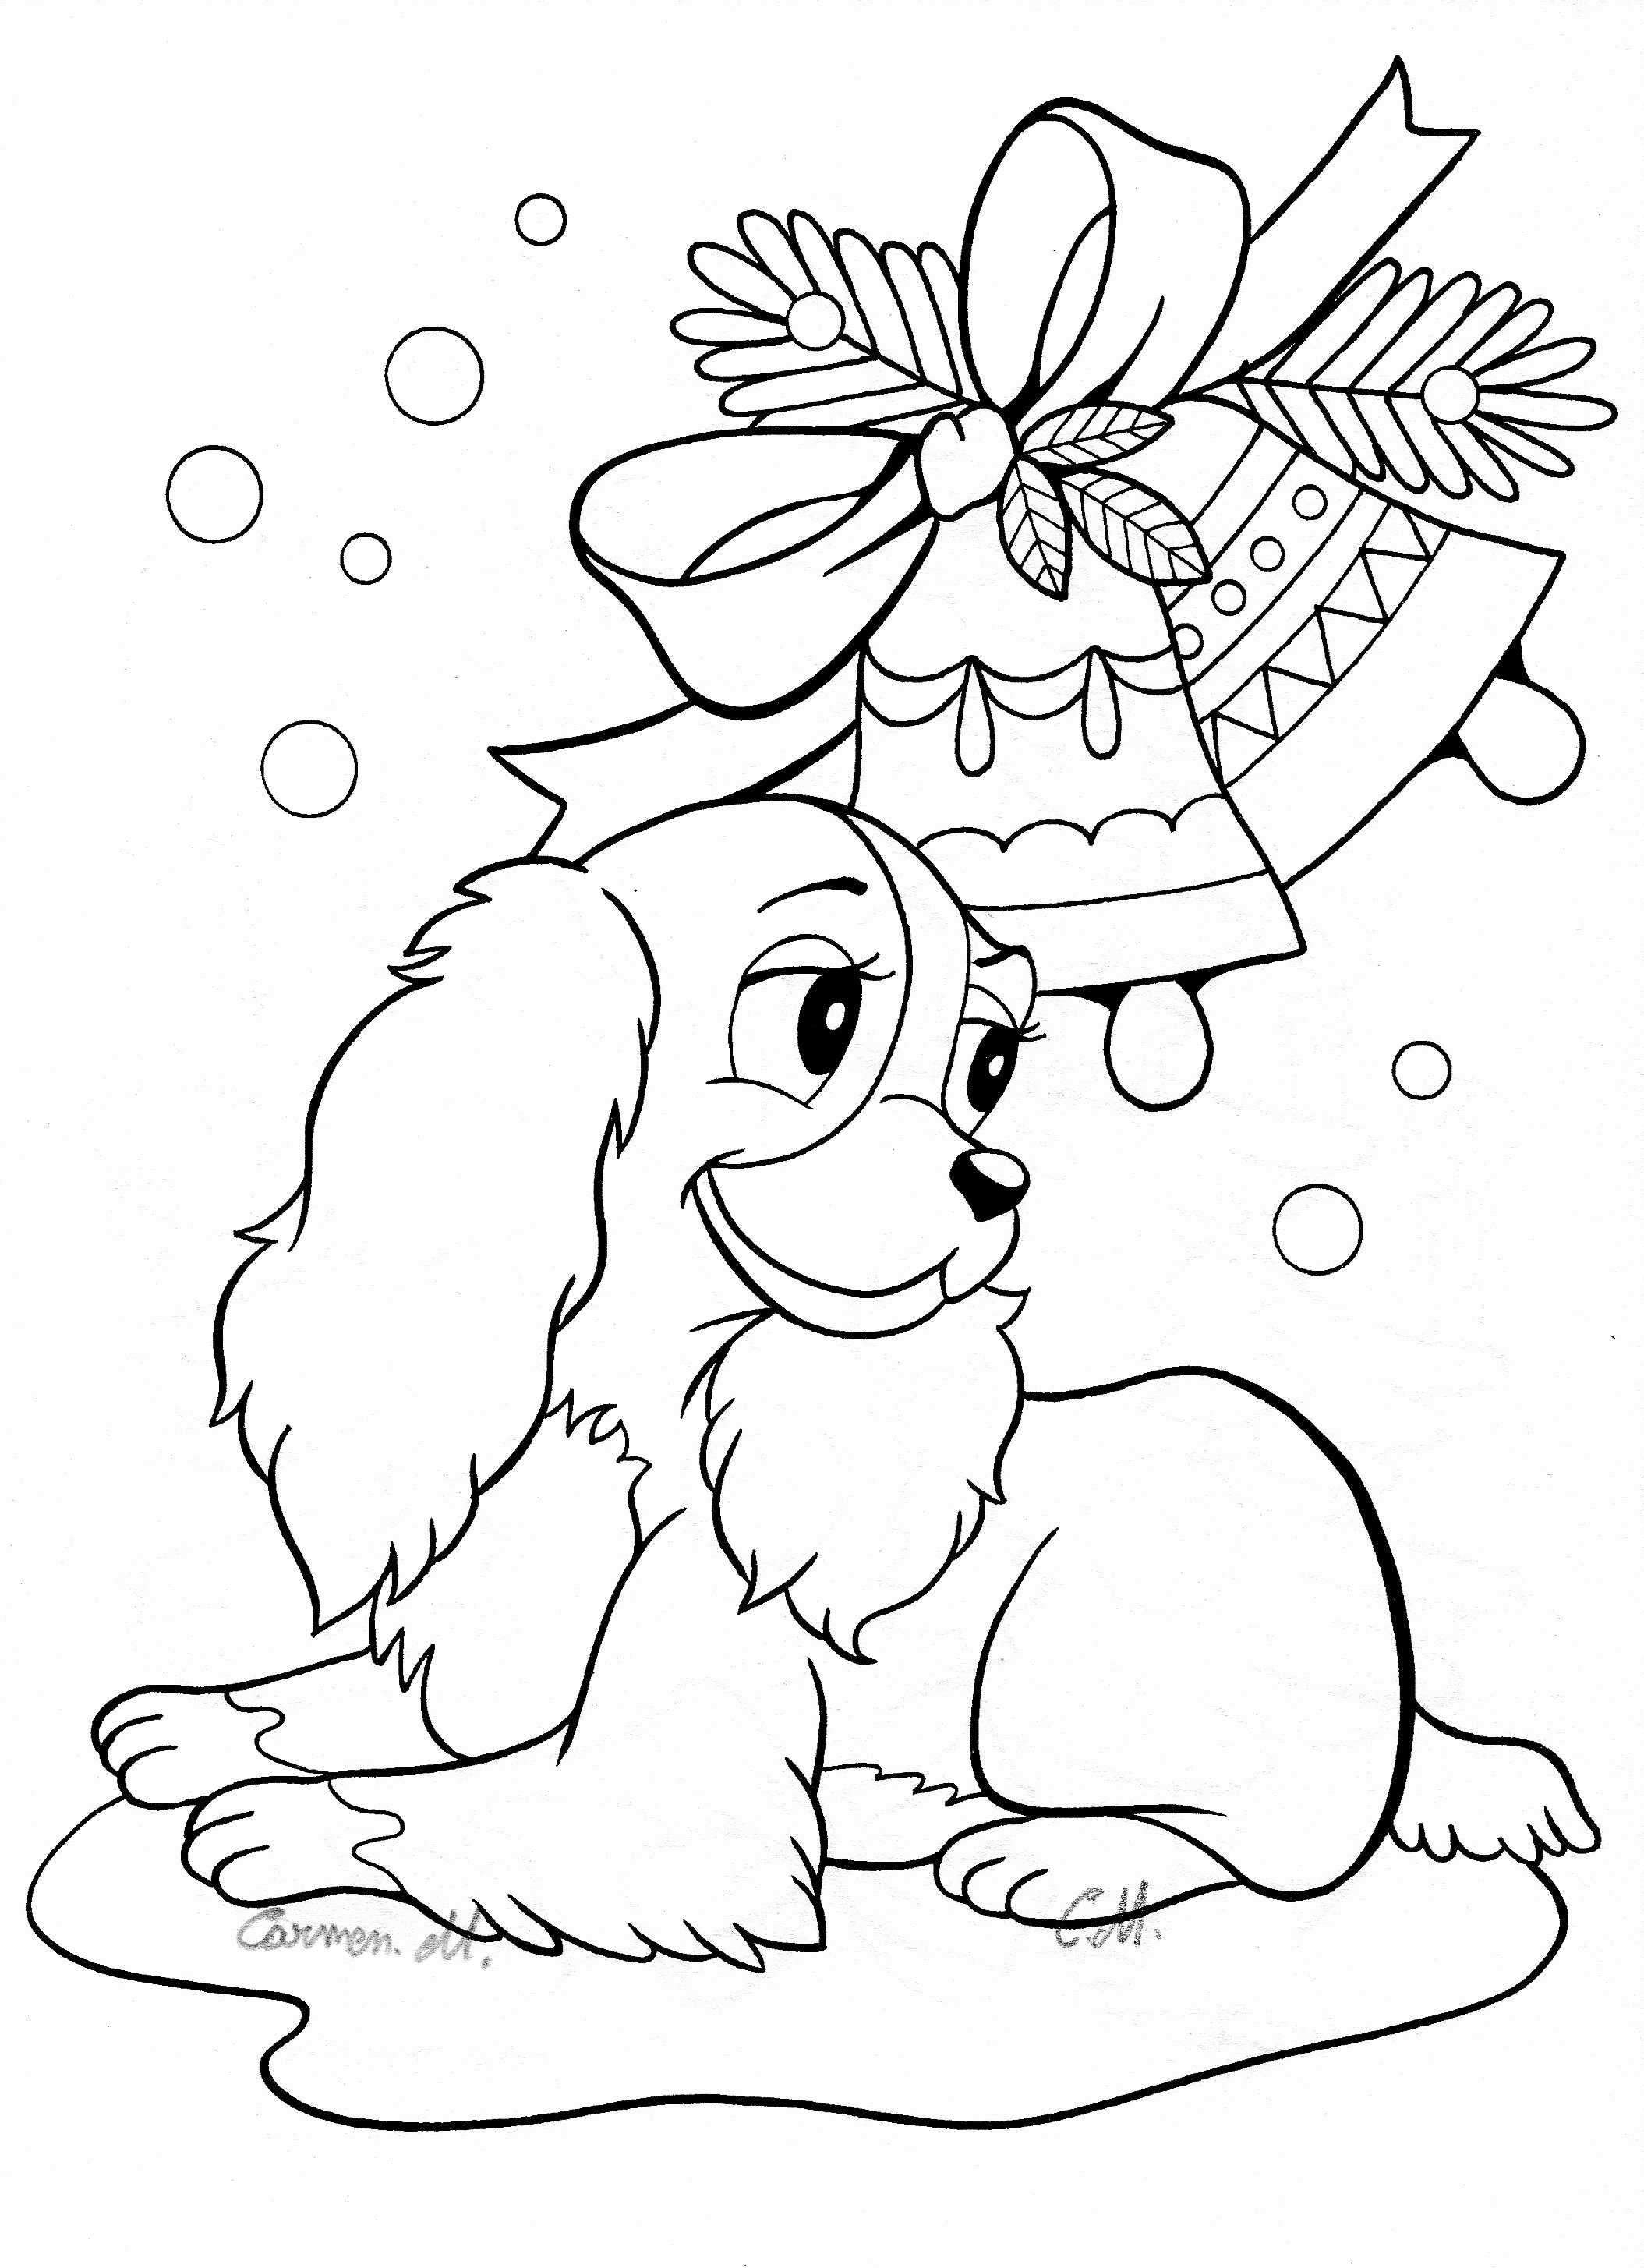 Bulldog Coloring Pages  Gallery 19e - Free For Children